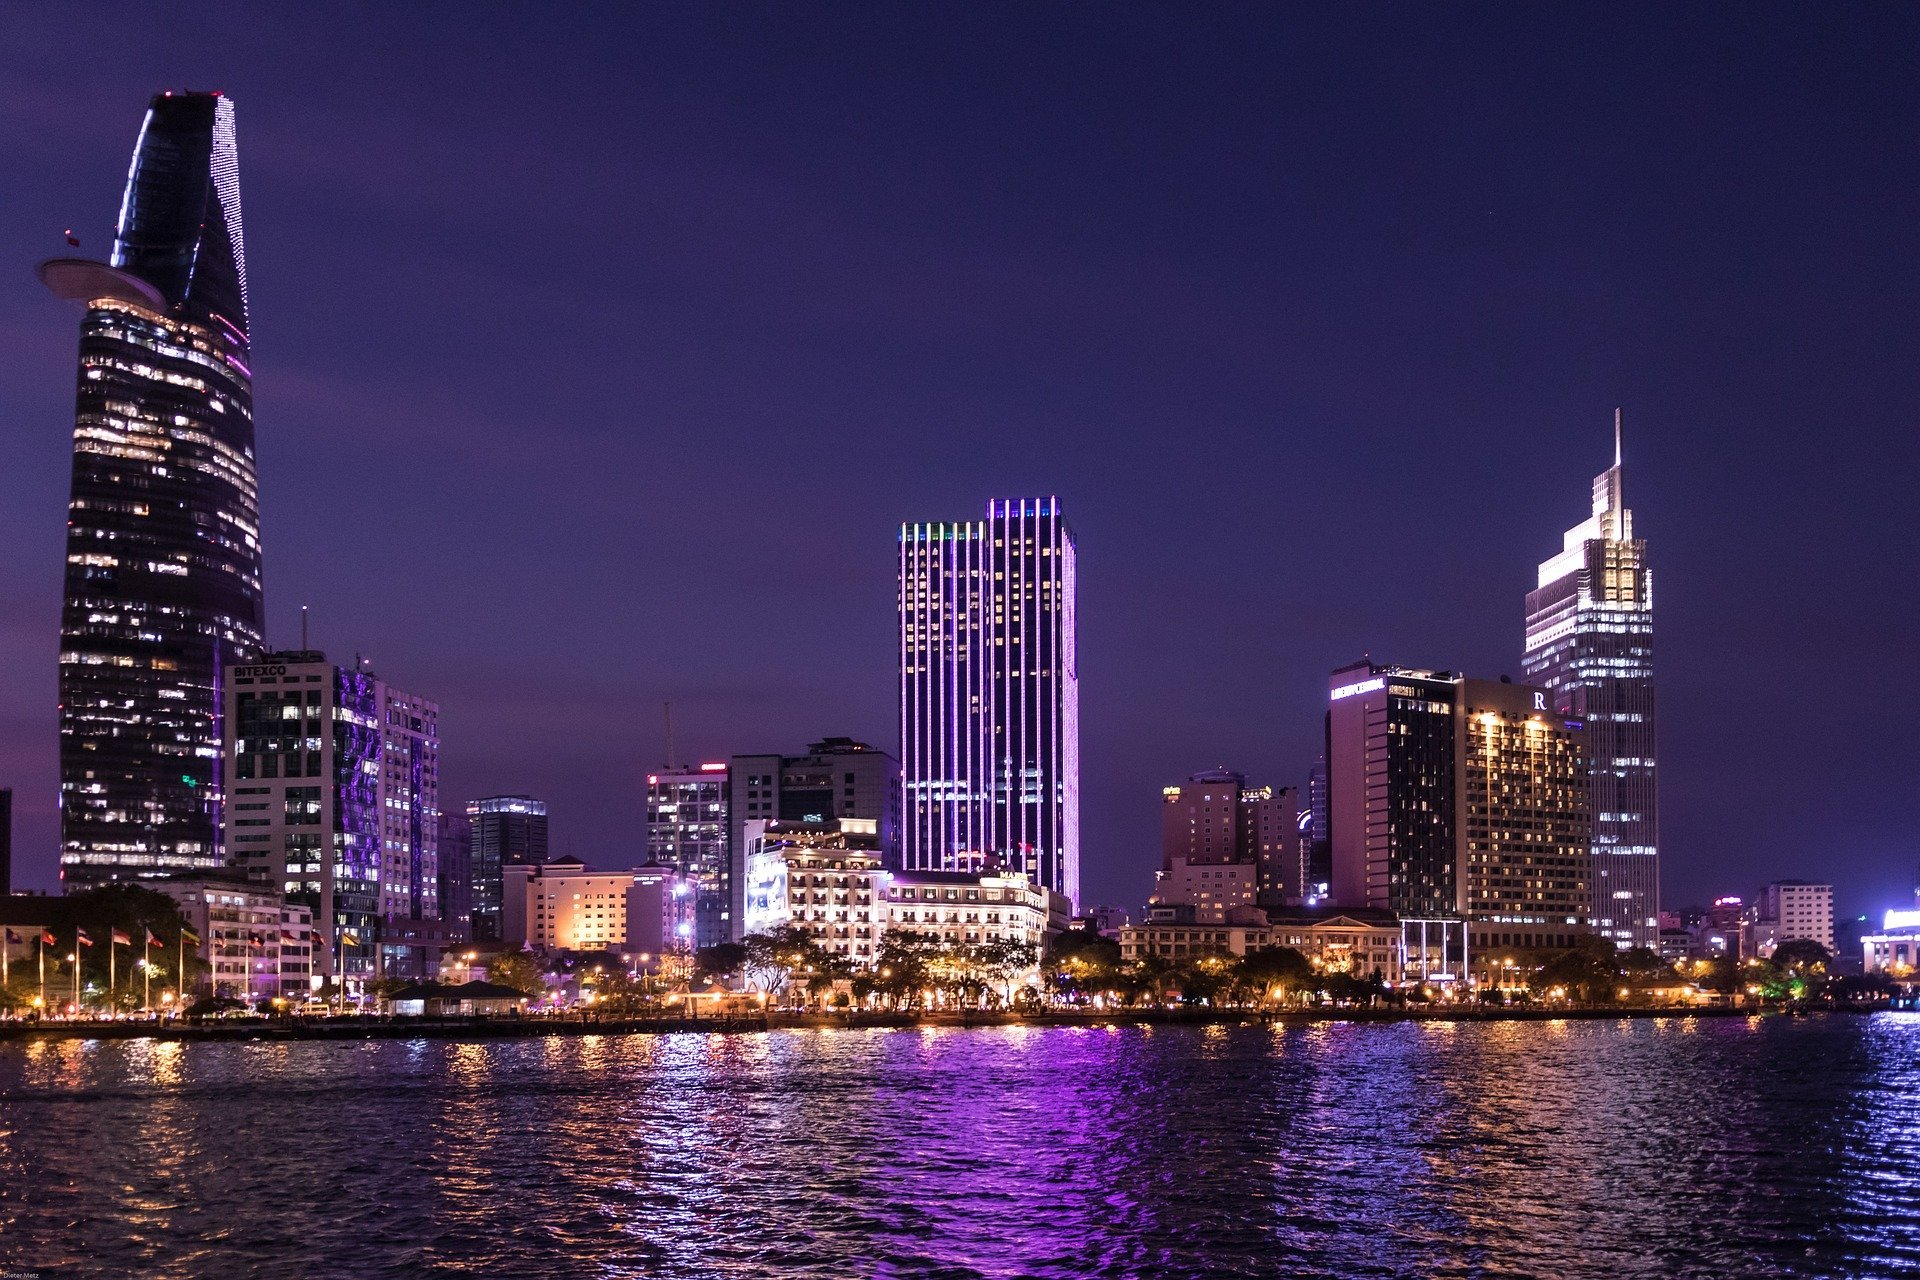 Discover The Former City Of Saigon On The Wonders Of Vietnam, Cambodia & Thailand 15 Day Package Tour